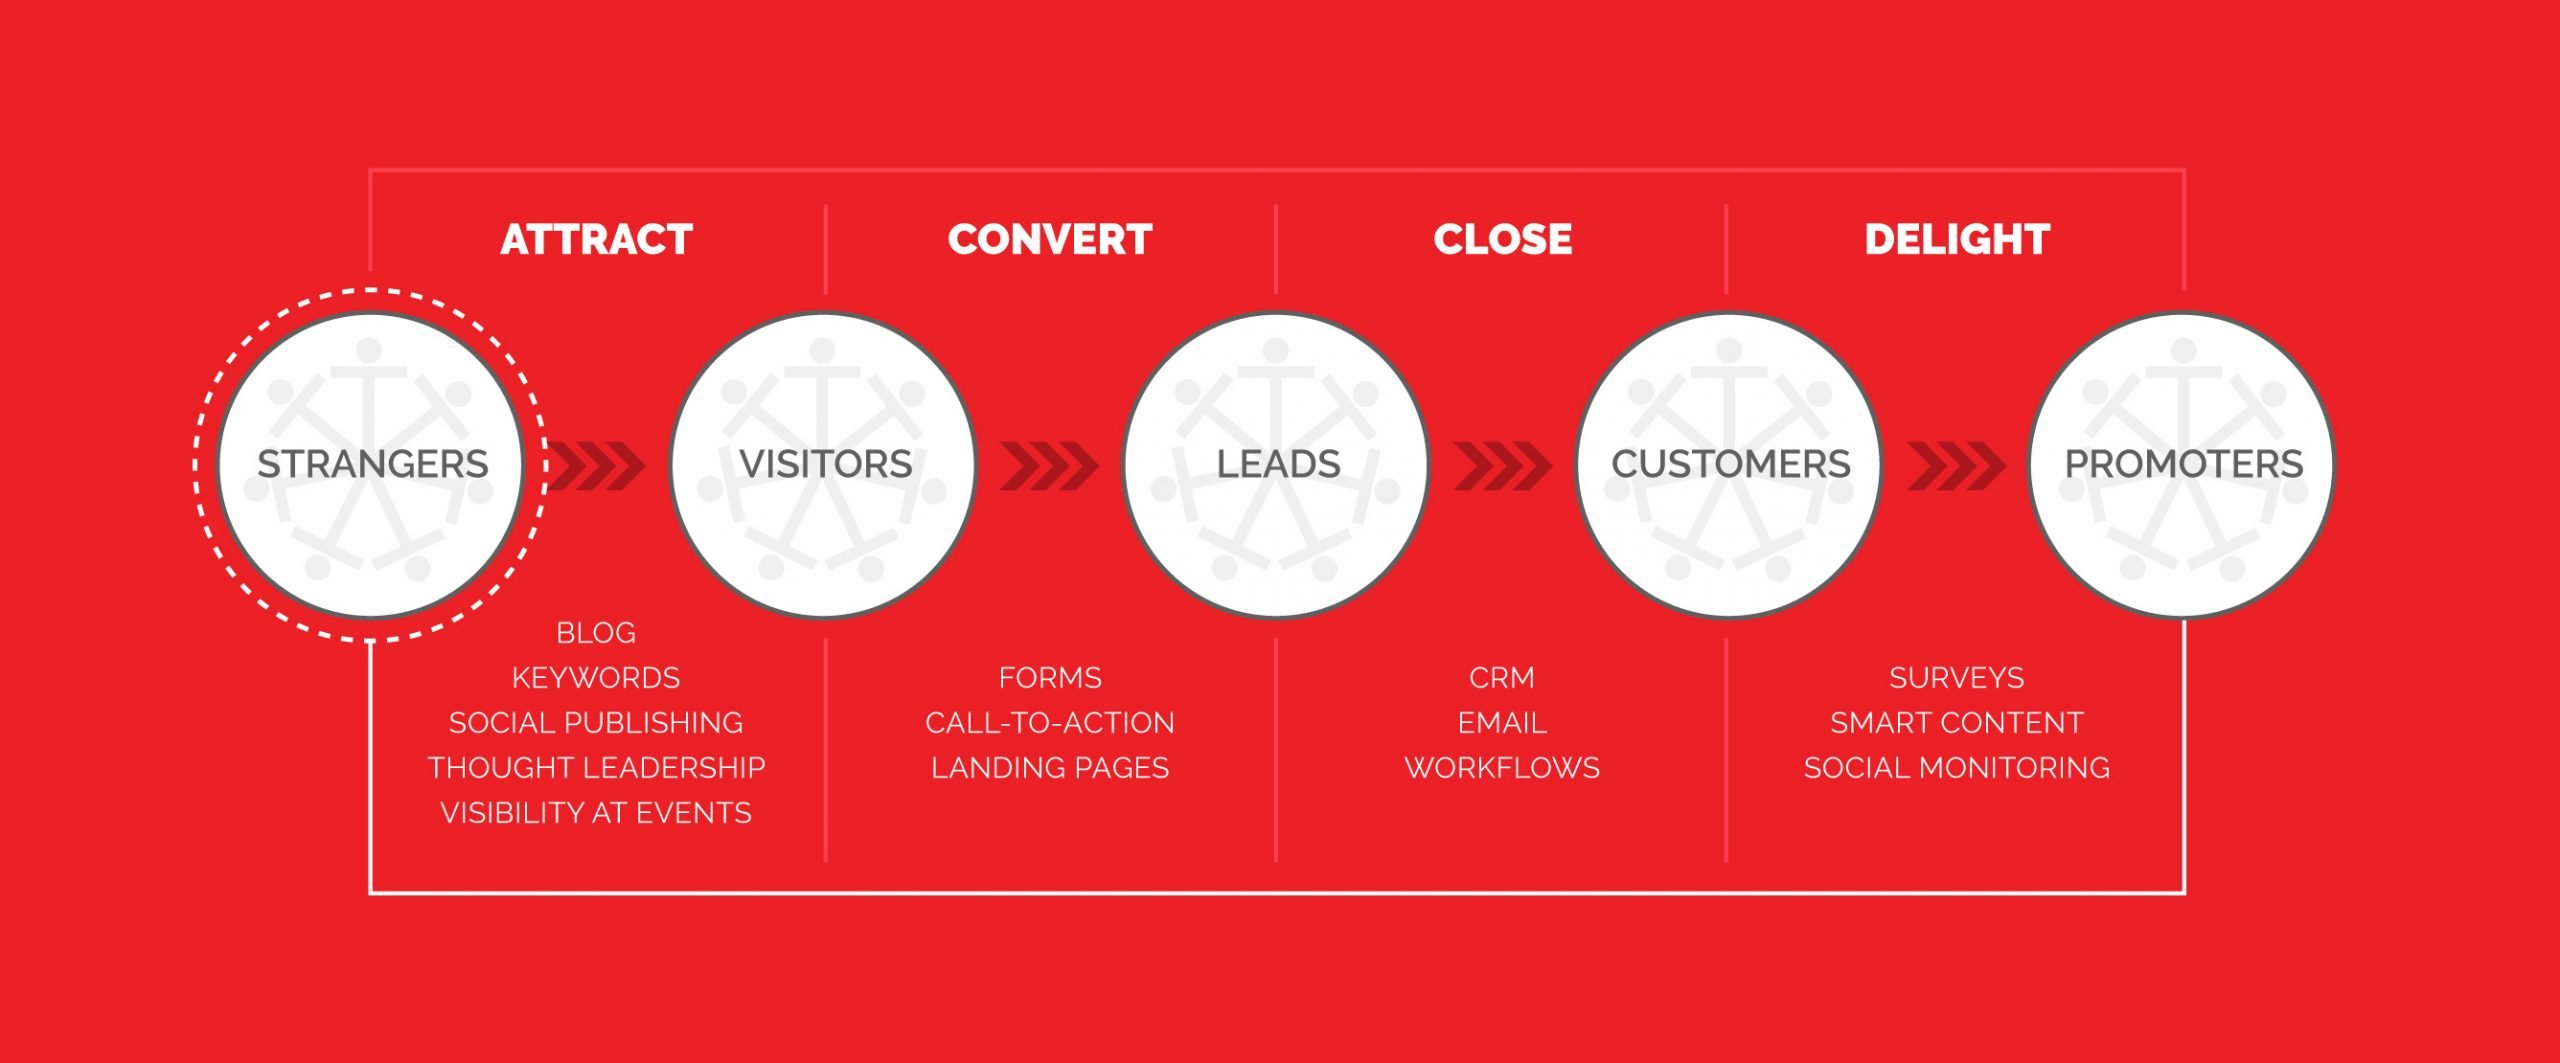 Inbound Content Marketing Strategy for Asian Business